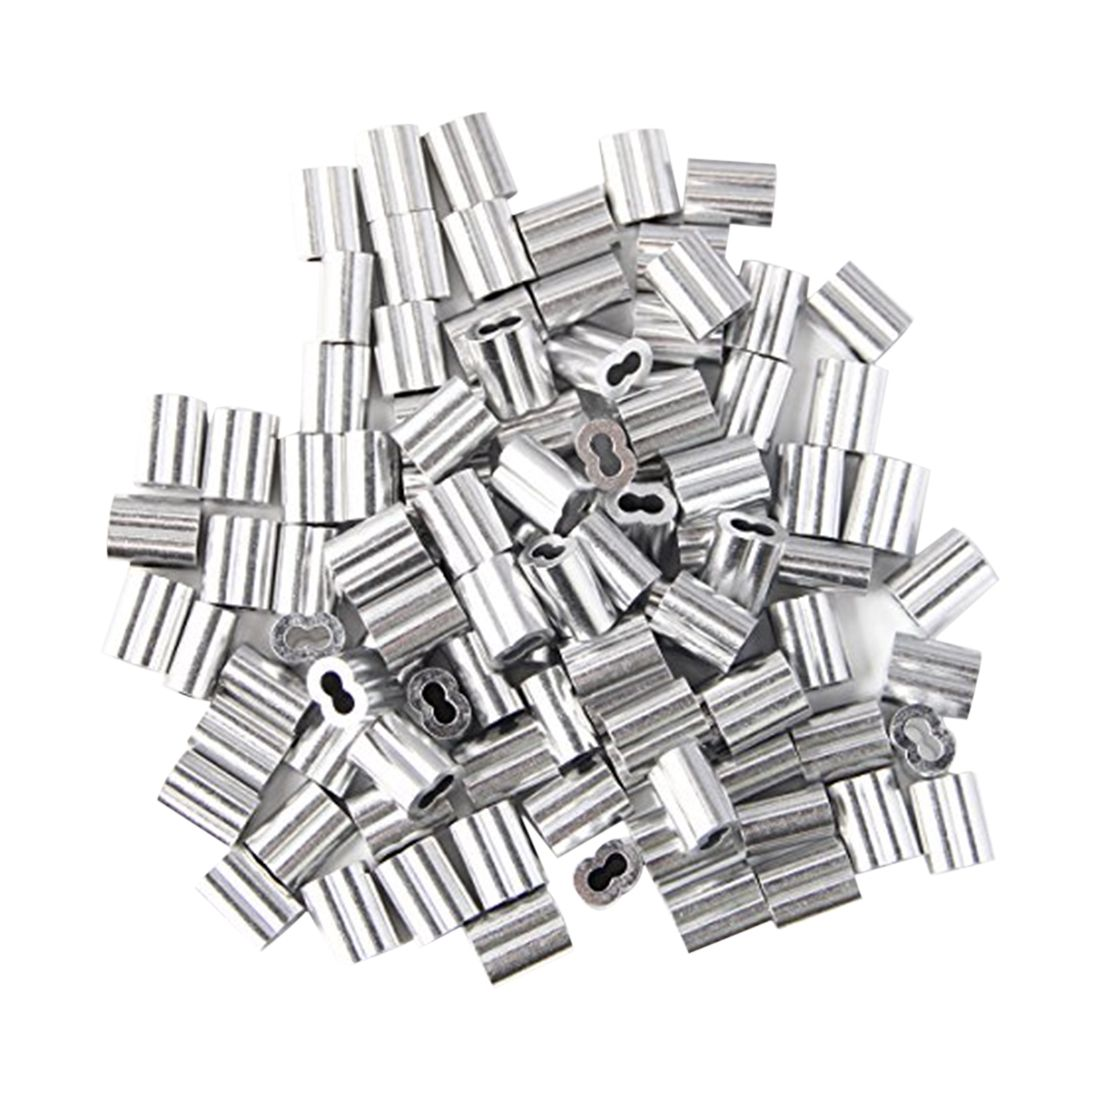 120x aluminum crimping loop sleeve for 2mm diameter wire rope and Aluminum Spring Clamps 120x aluminum crimping loop sleeve for 2mm diameter wire rope and cable g7q9